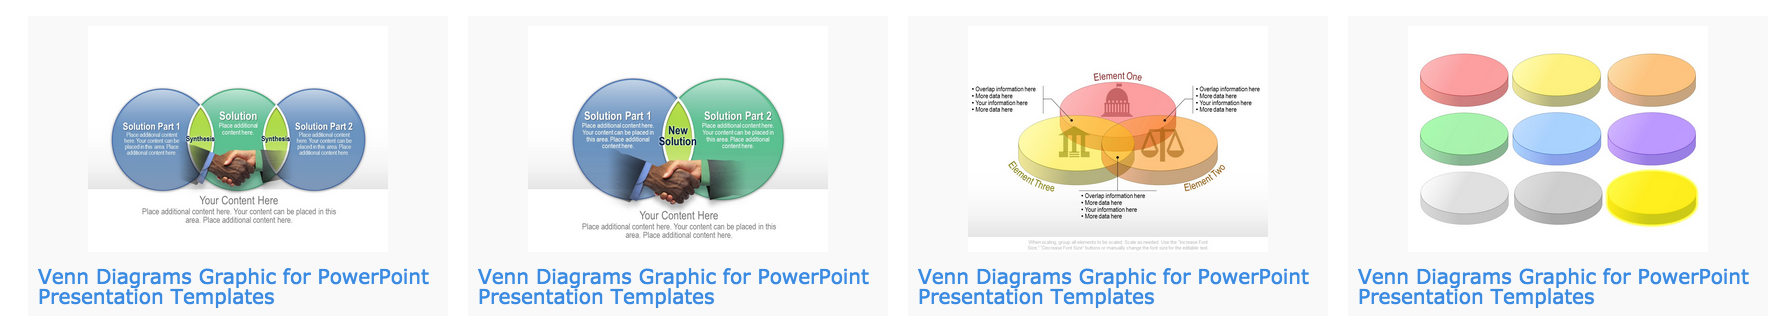 Download venn diagram templates for powerpoint view all venn diagram templates toneelgroepblik